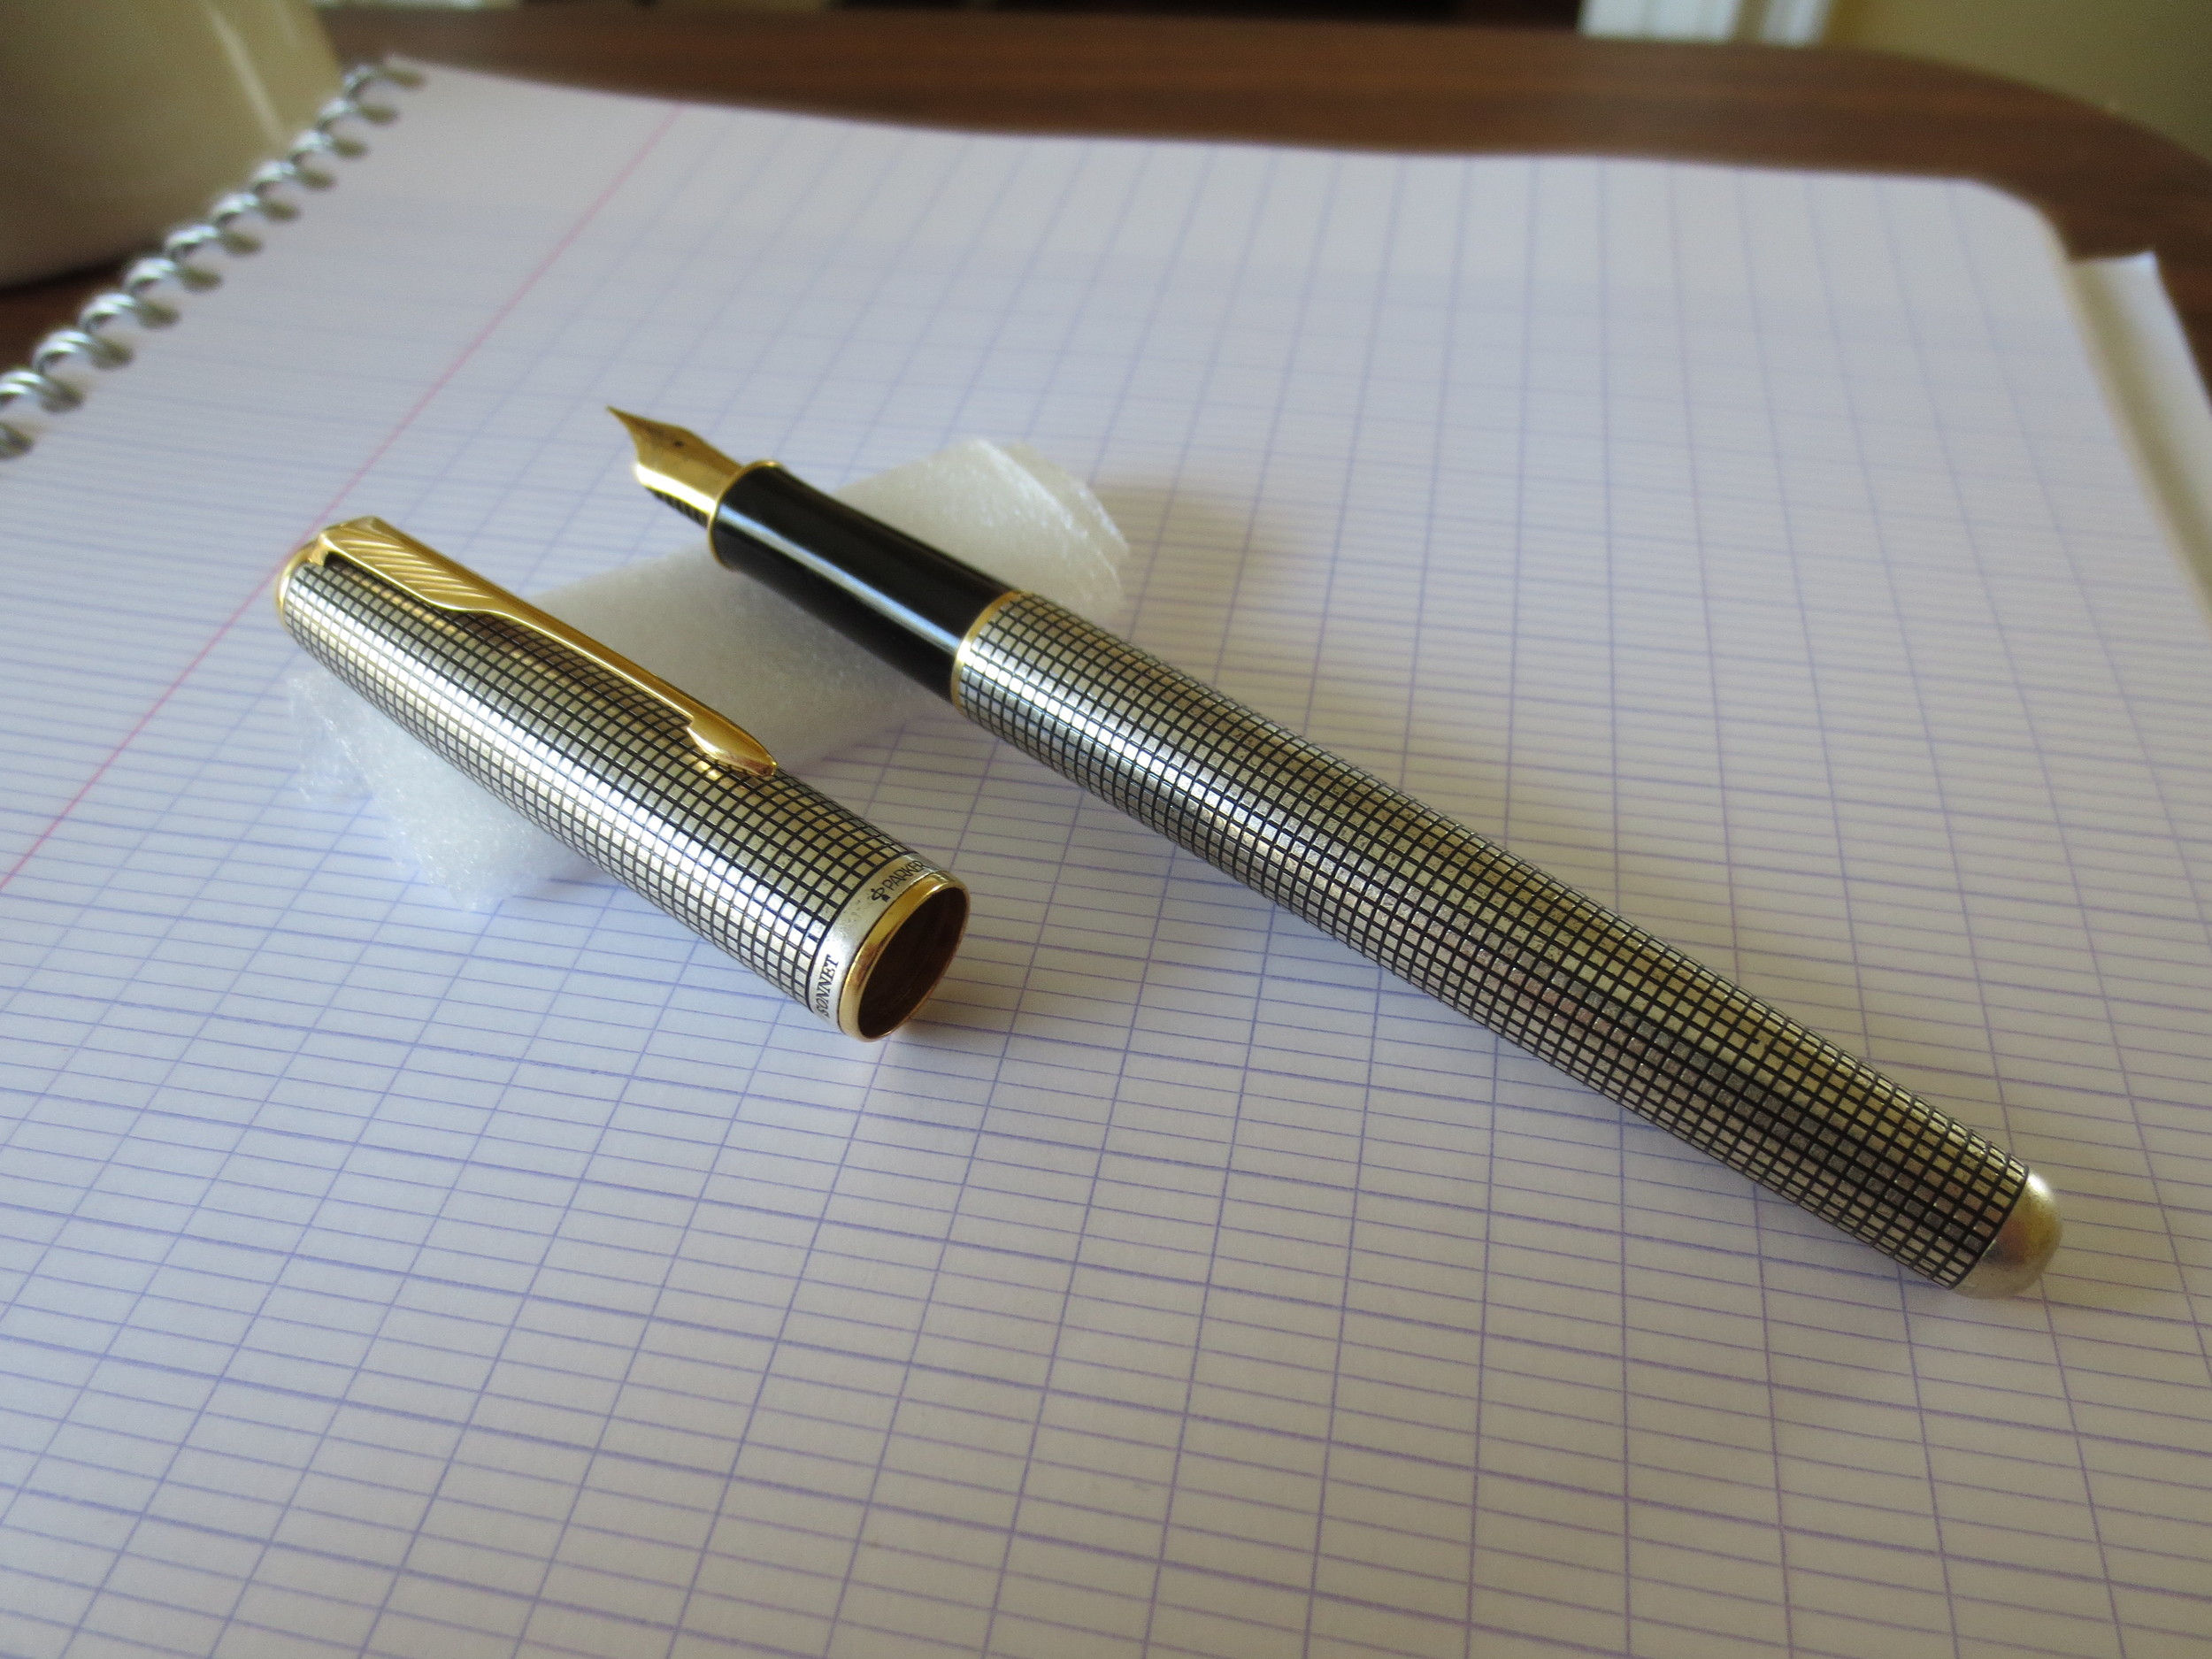 The pen has a black plastic grip section.  It's sturdy, and doesn't become overly slick during long writing sessions.